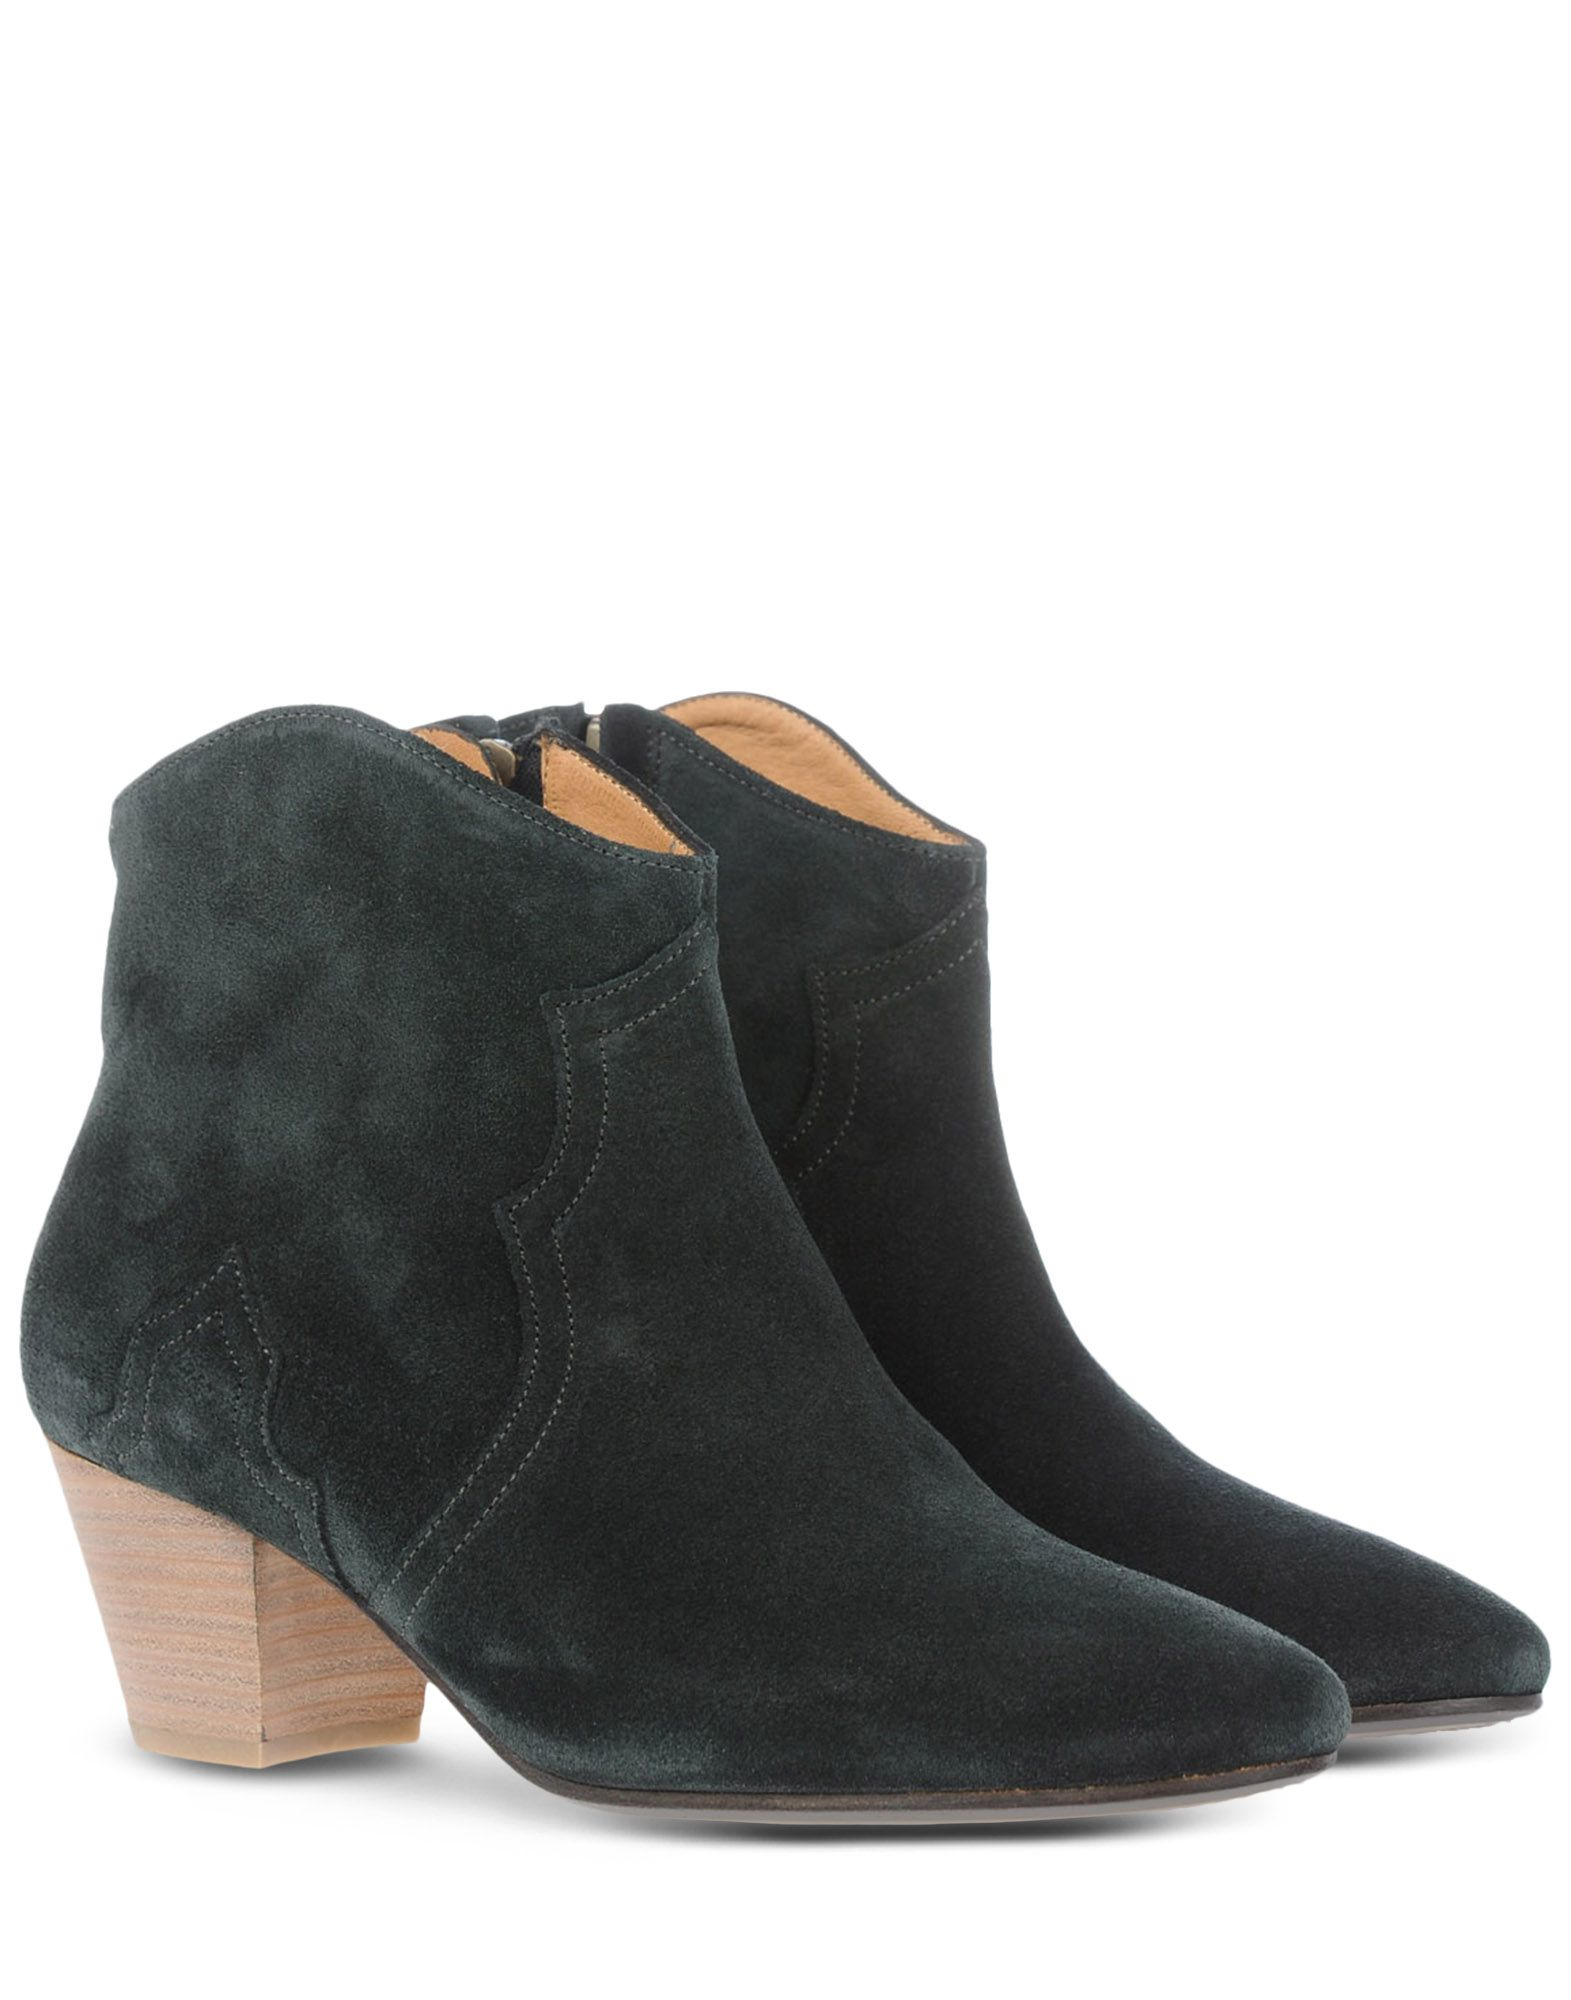 toile isabel marant curved topline suede ankle boots in gray steel grey lyst. Black Bedroom Furniture Sets. Home Design Ideas